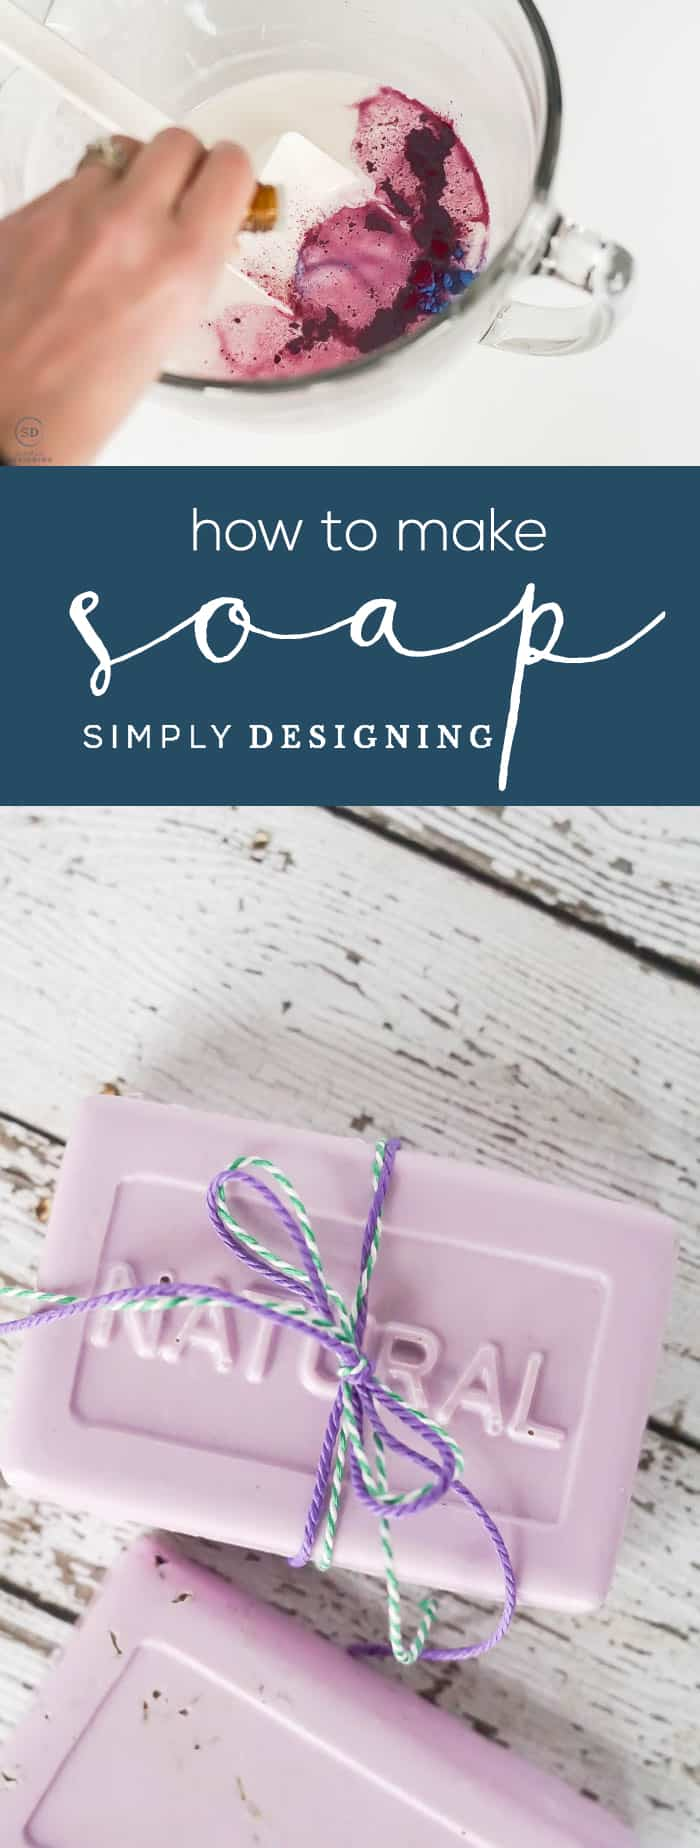 How to make Soap - Homemade Lavender Soap with Essential Oils